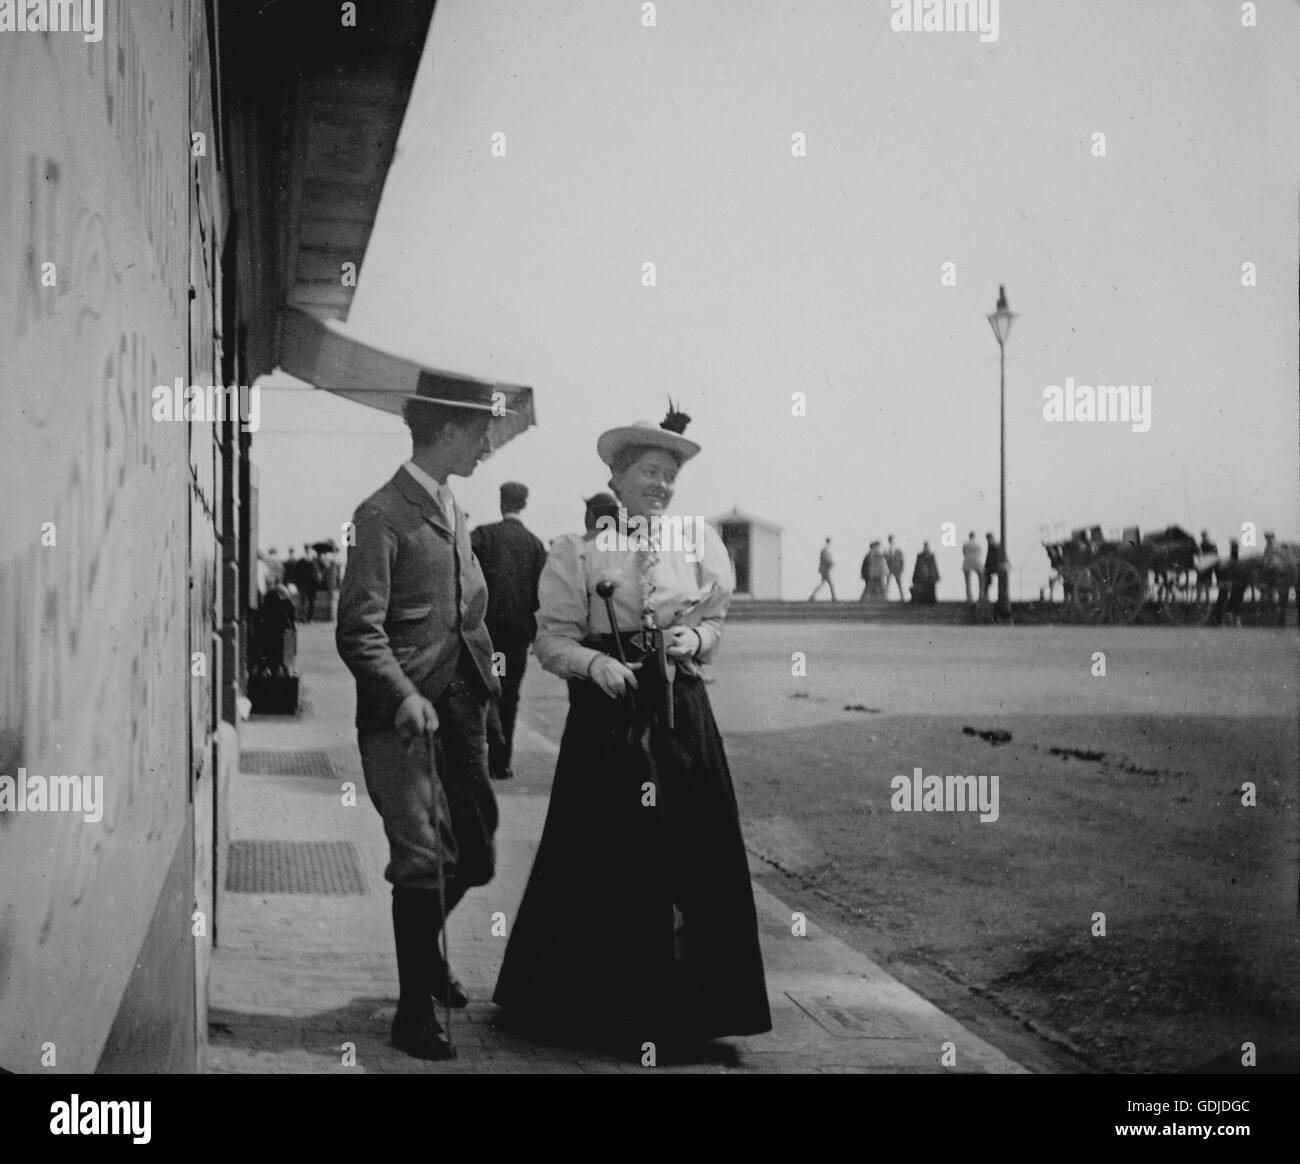 amateur young couple Amateur holiday photos c1899, a young couple on their way to the promenade,  venue appears to be Hastings. Photograph by Tony Henshaw